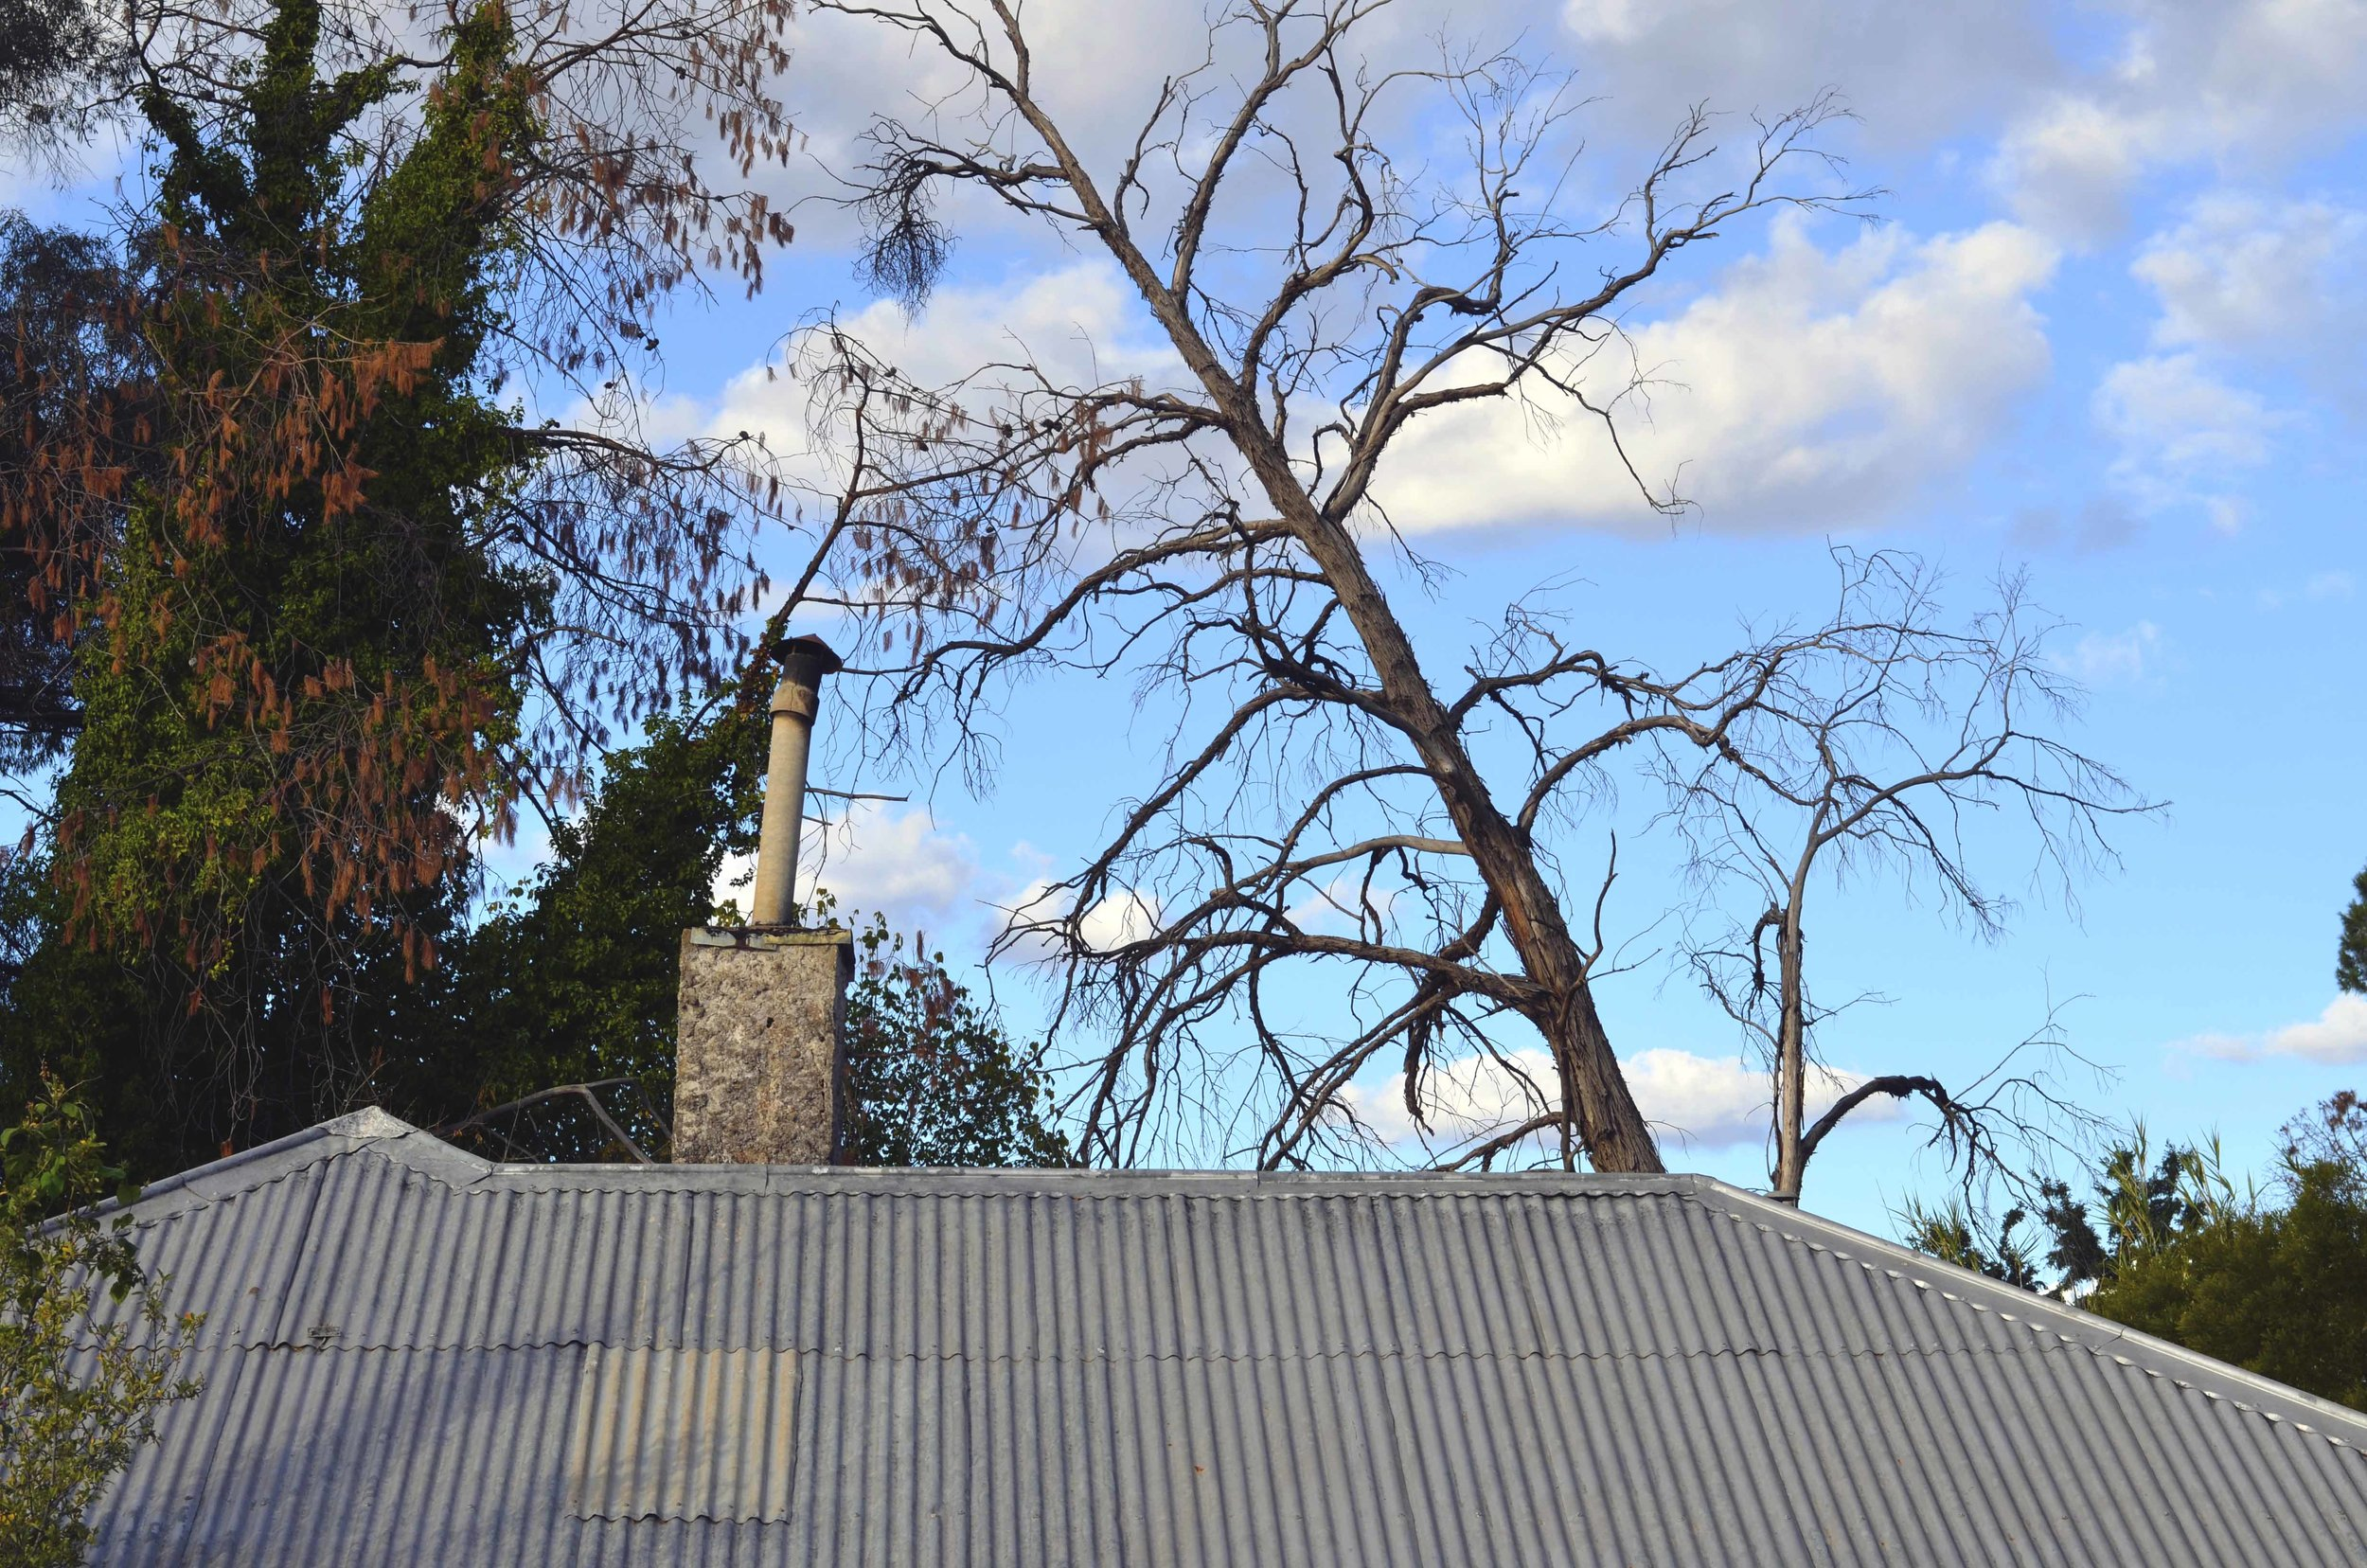 leaning tree of Coona